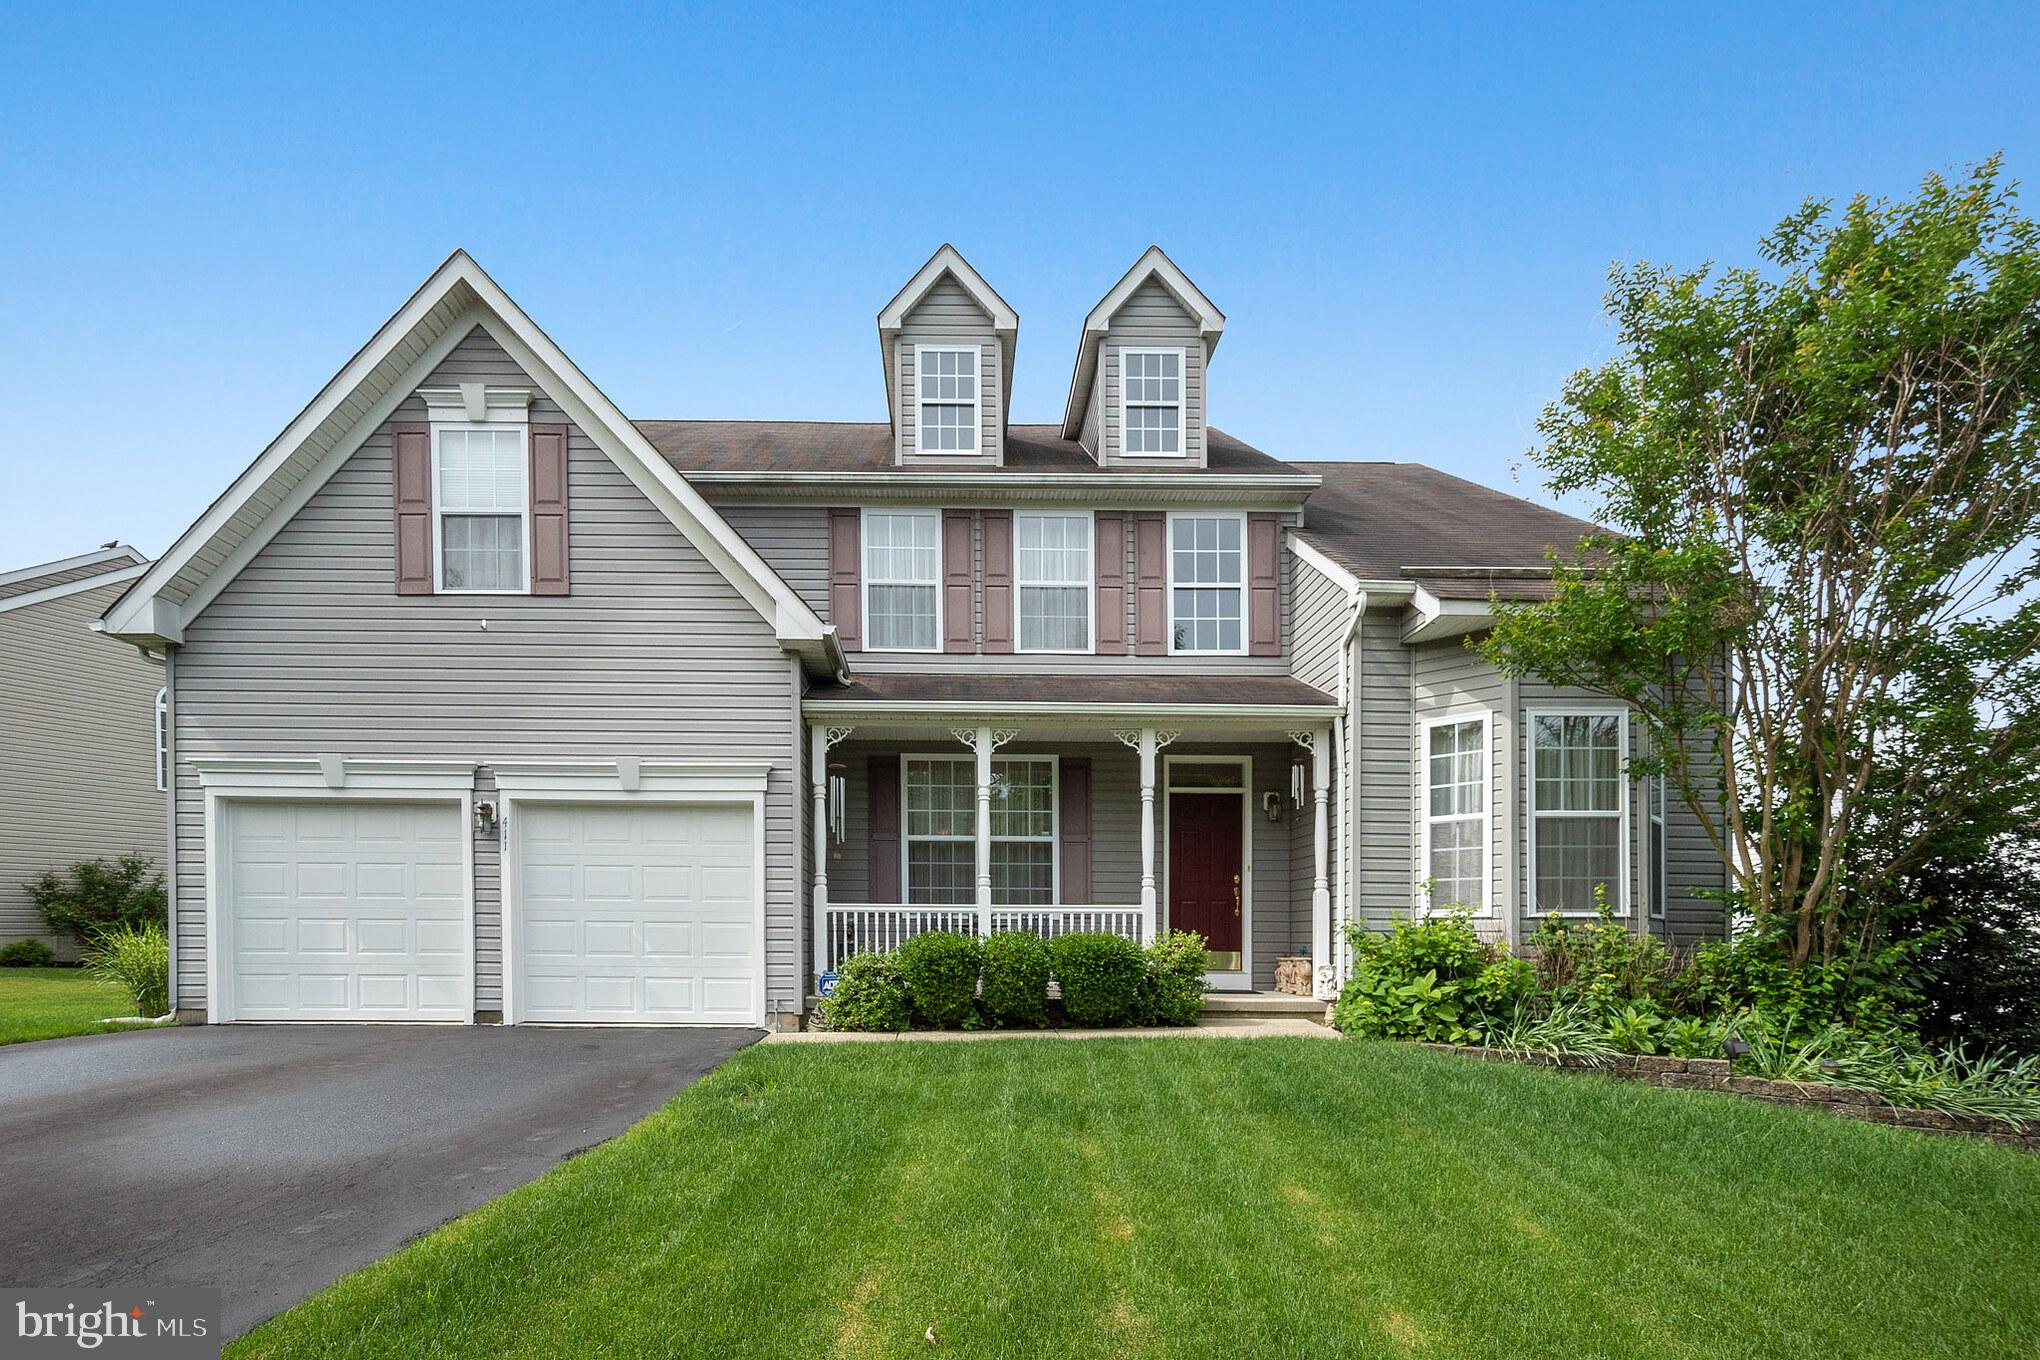 411 GARDEN VIEW DRIVE, THORNDALE, PA 19372